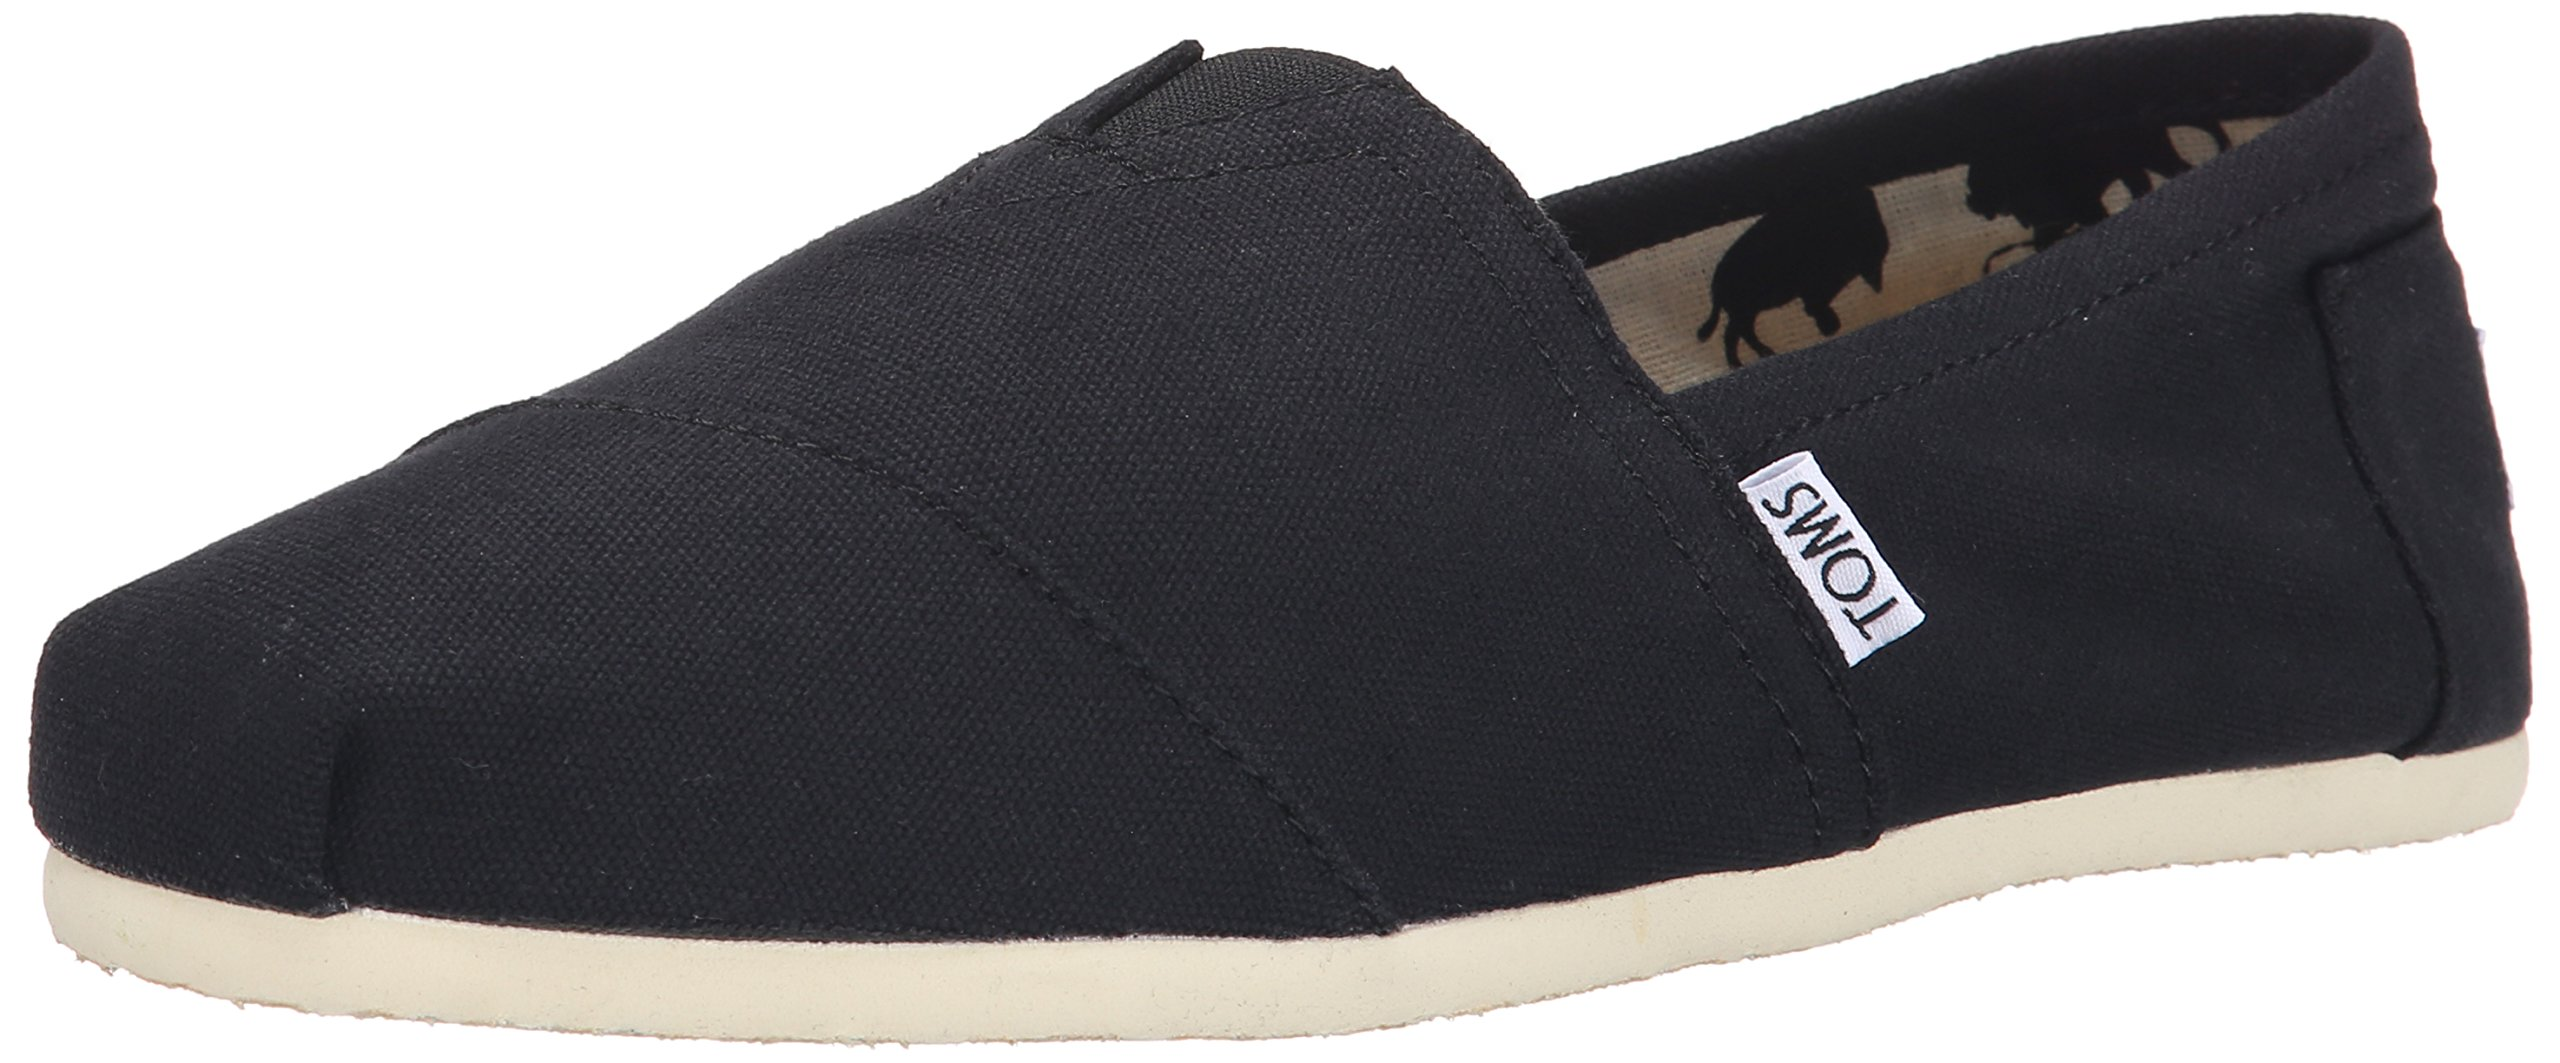 Toms Canvas Alpargata Flat (Womens)-Black-7.5 M US